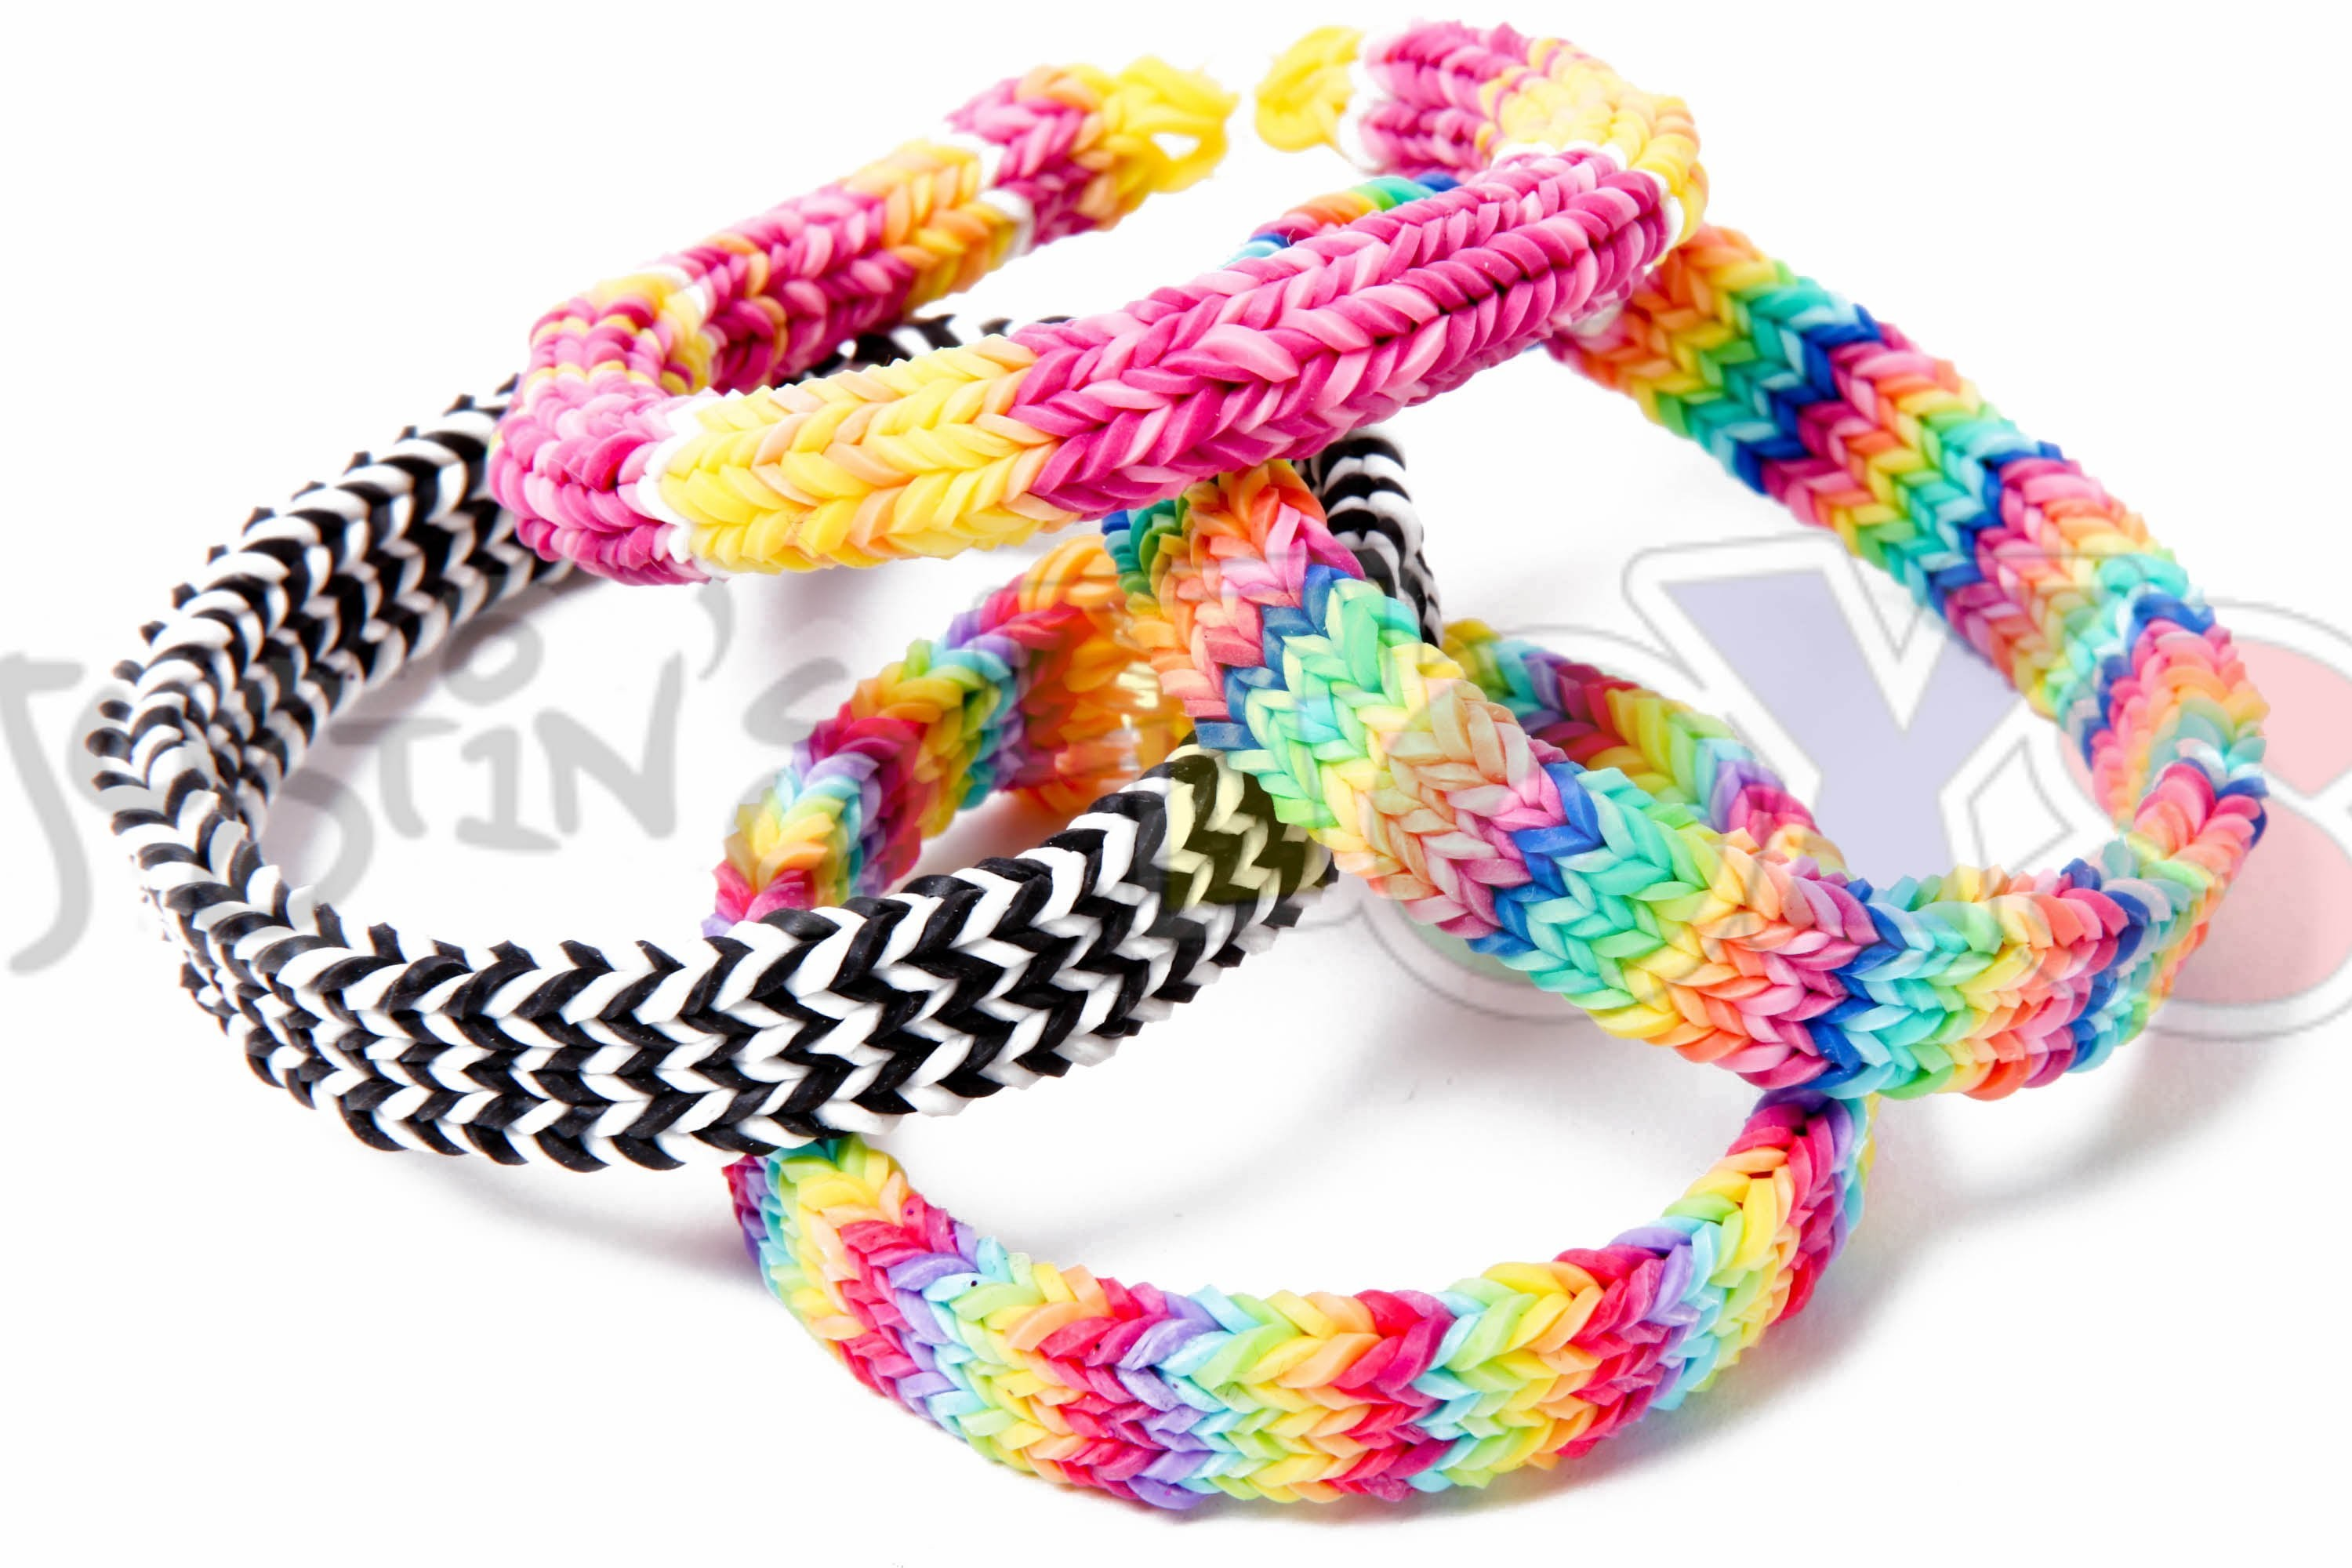 FLEXAFISH - Flat Hexafish - Rainbow Loom Bracelet Tutorial on One Loom